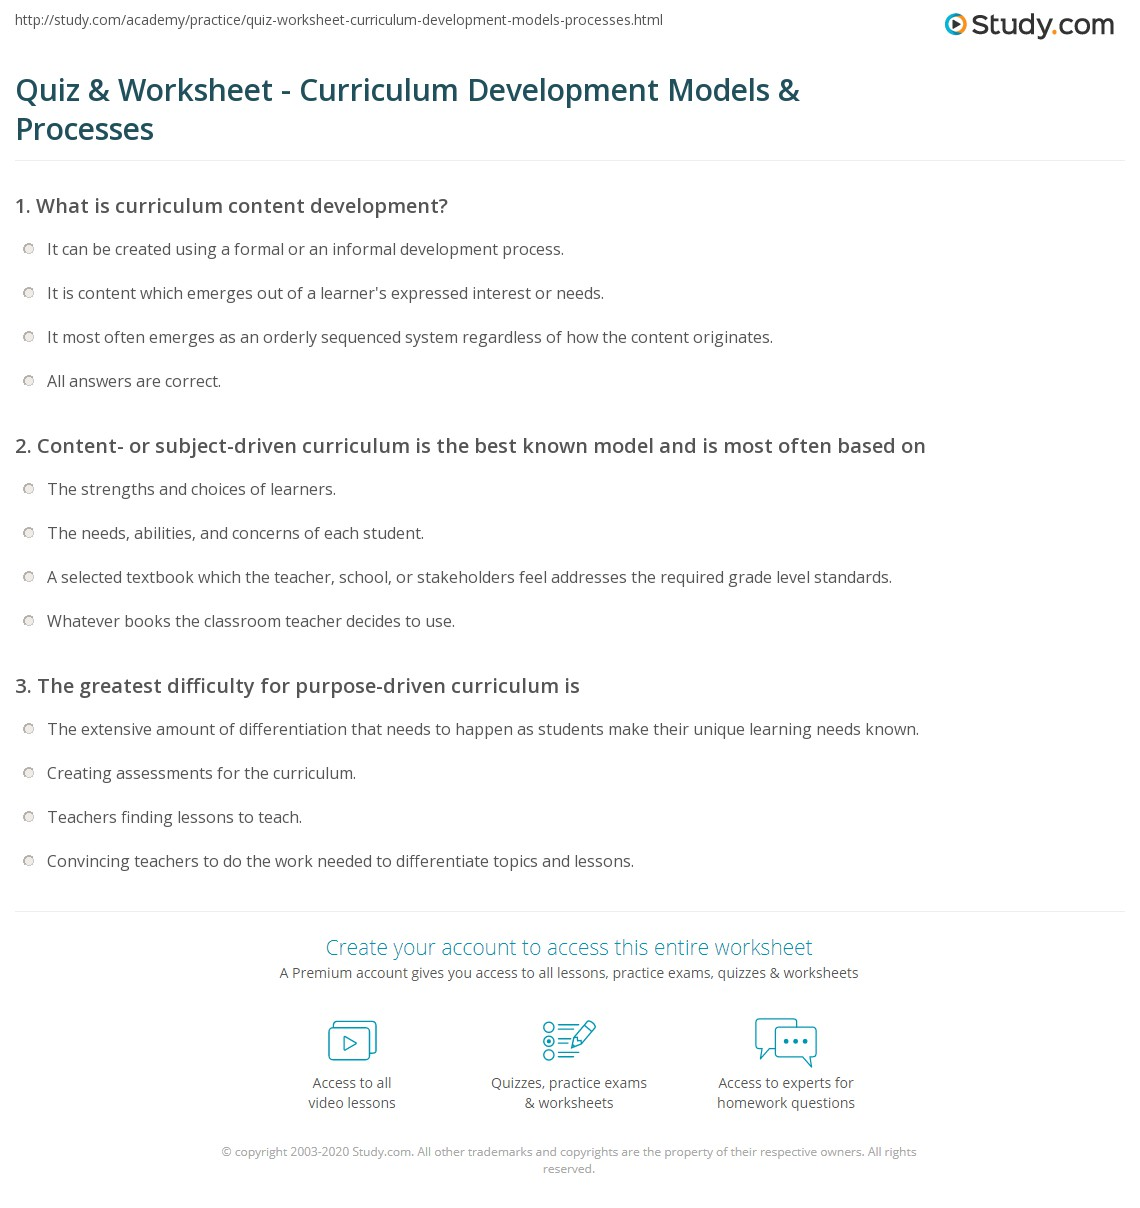 Quiz Worksheet Curriculum Development Models Processes Study